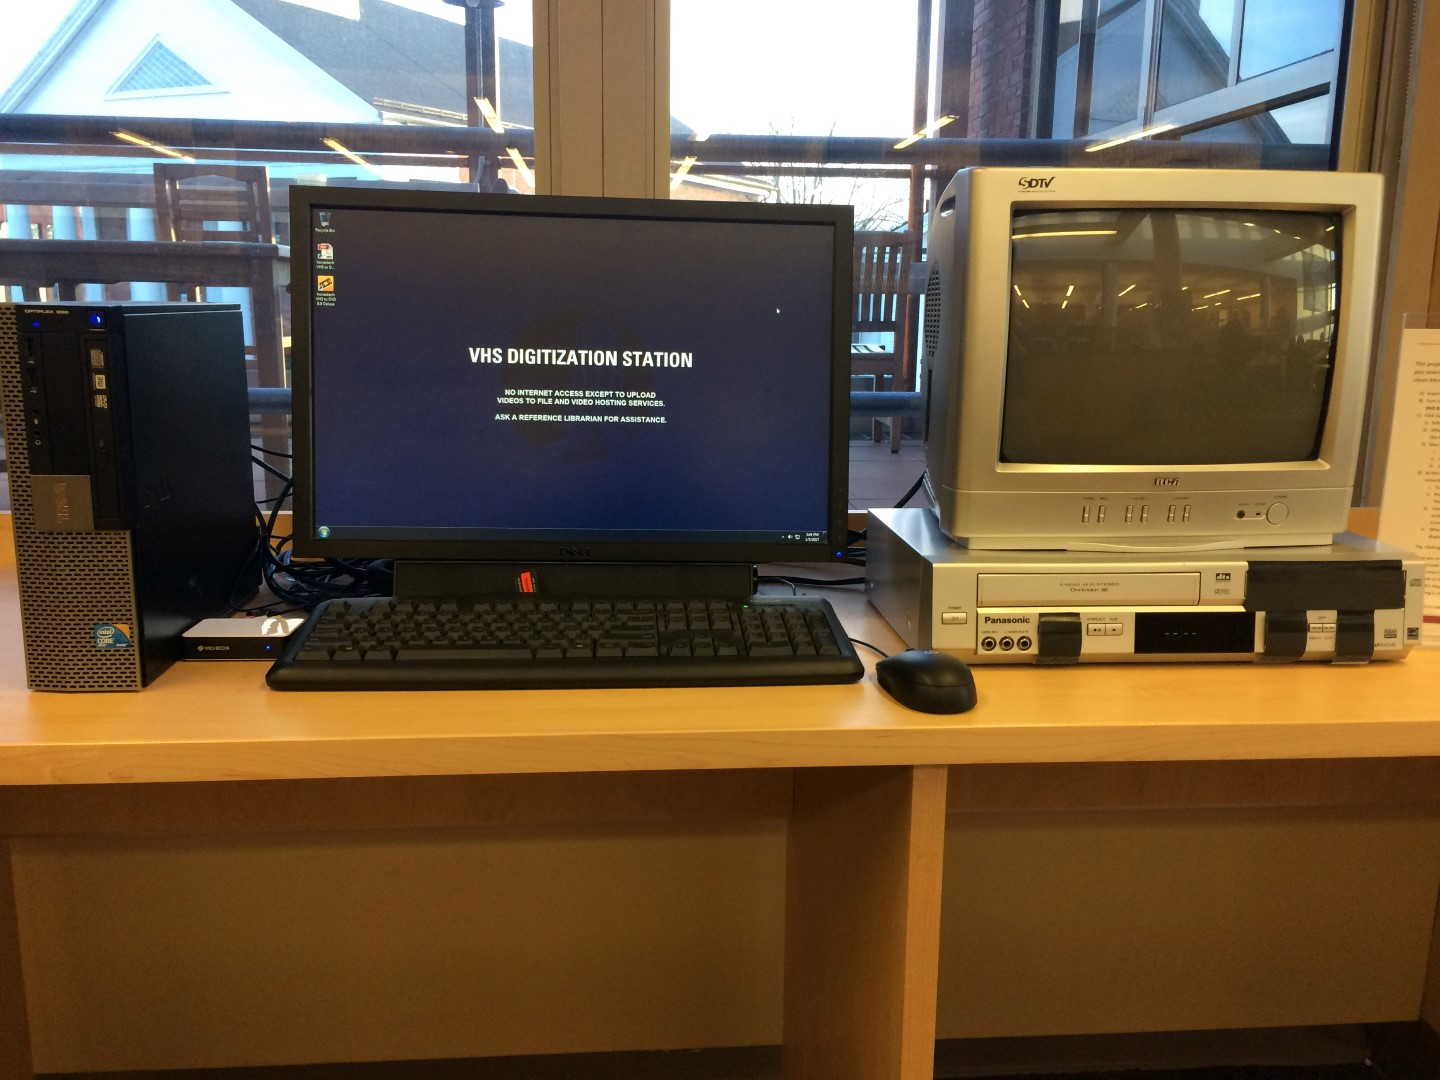 VHS Digitization Station